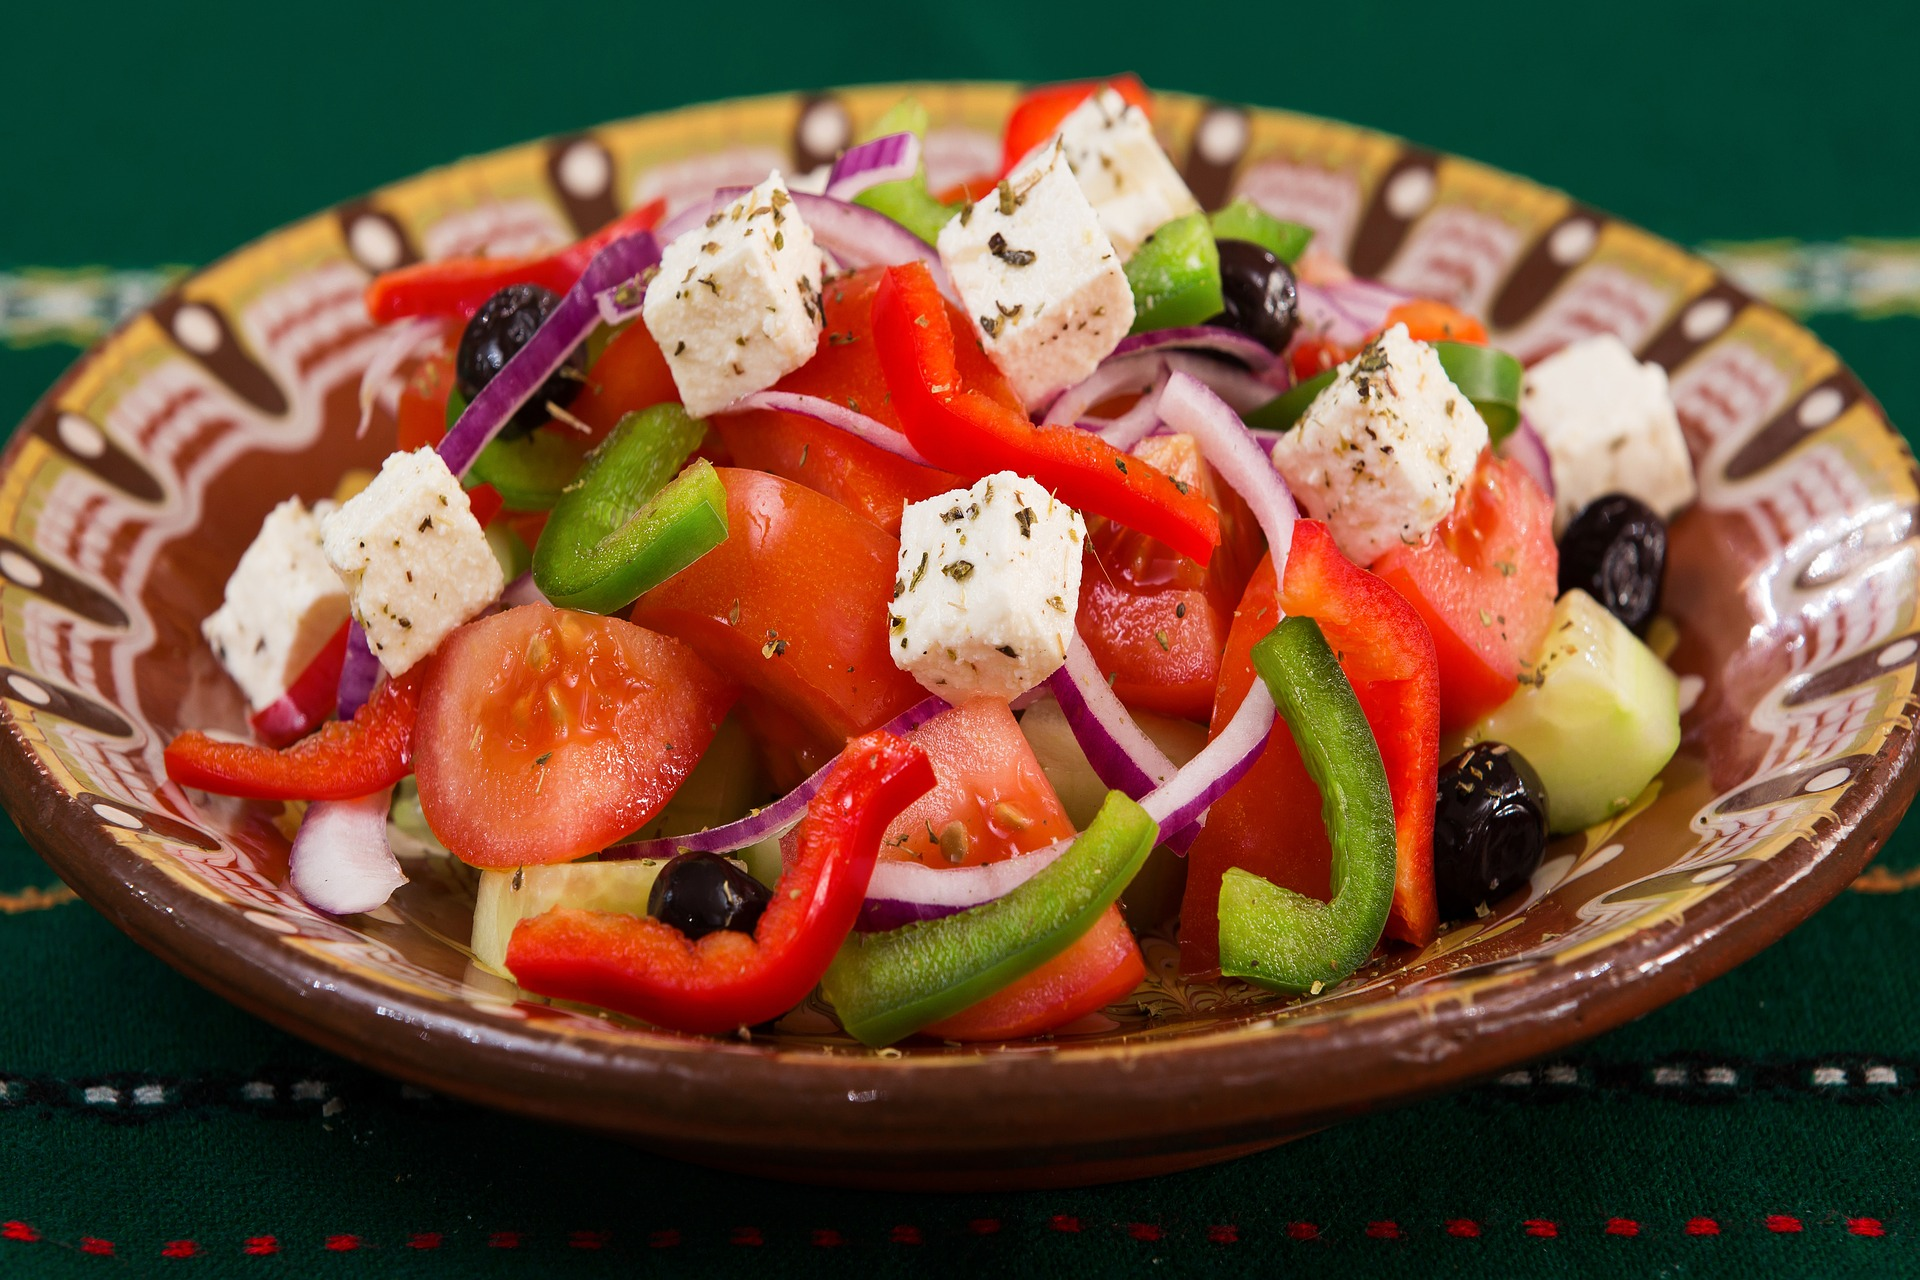 greek food, vegetable, dubai, tourism